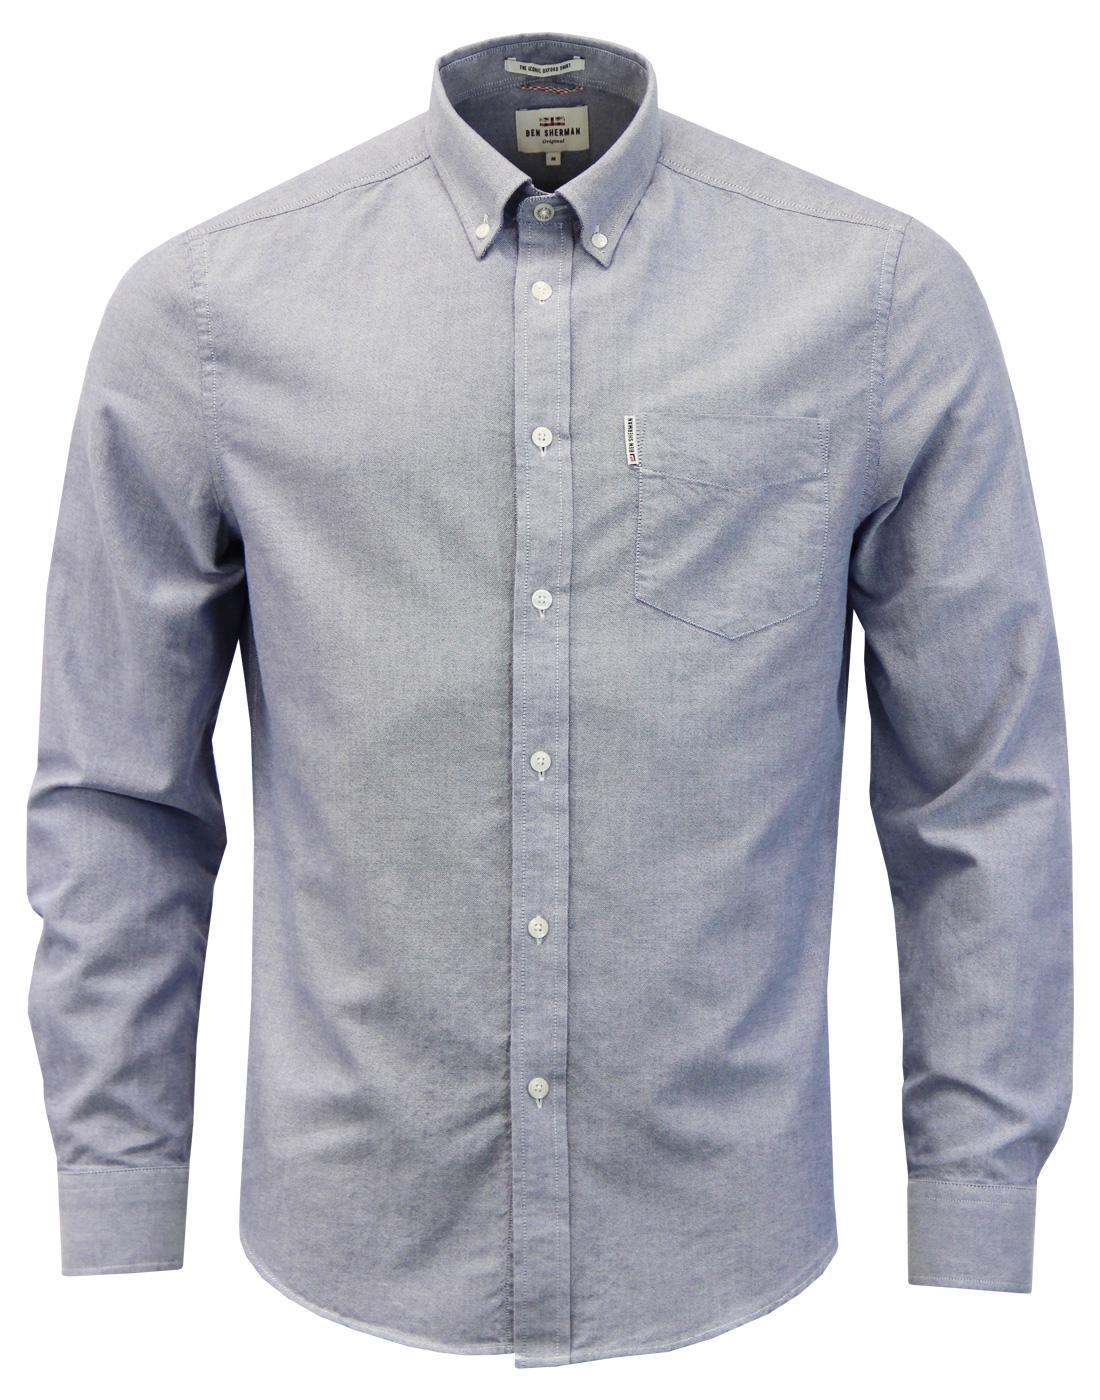 BEN SHERMAN Men's Mod Button Down Oxford Shirt Bl